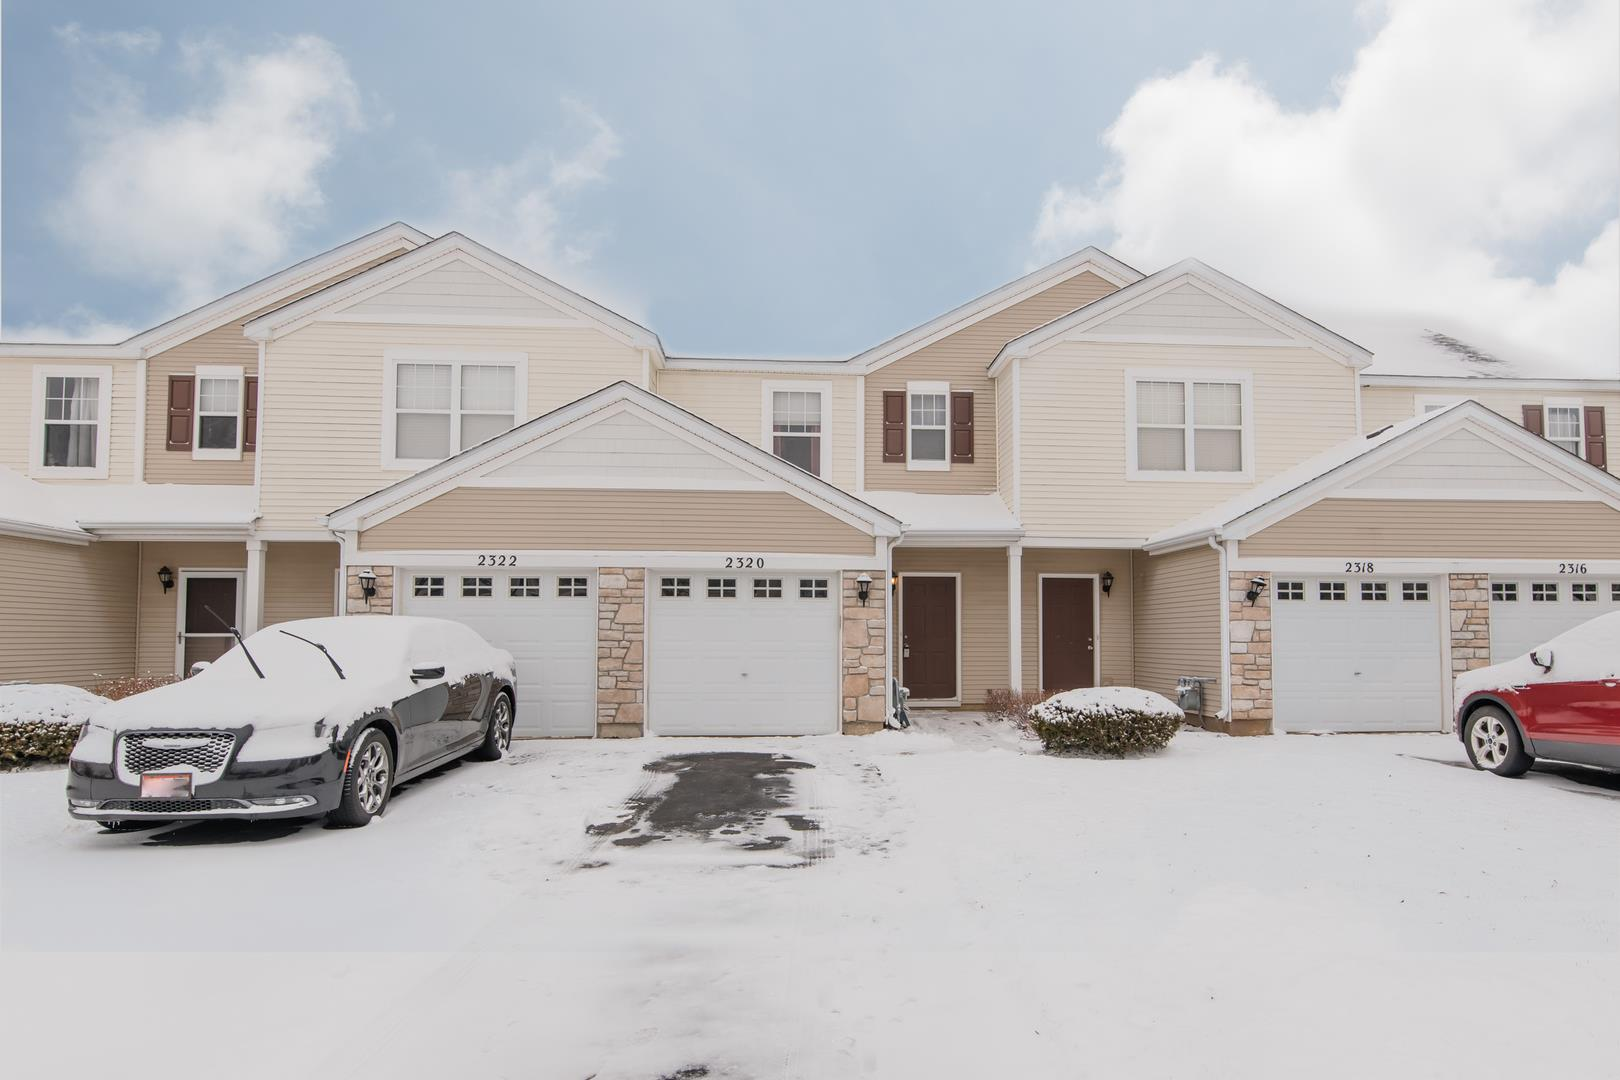 2320 Flagstone Lane, Carpentersville, IL 60110 - #: 10978152